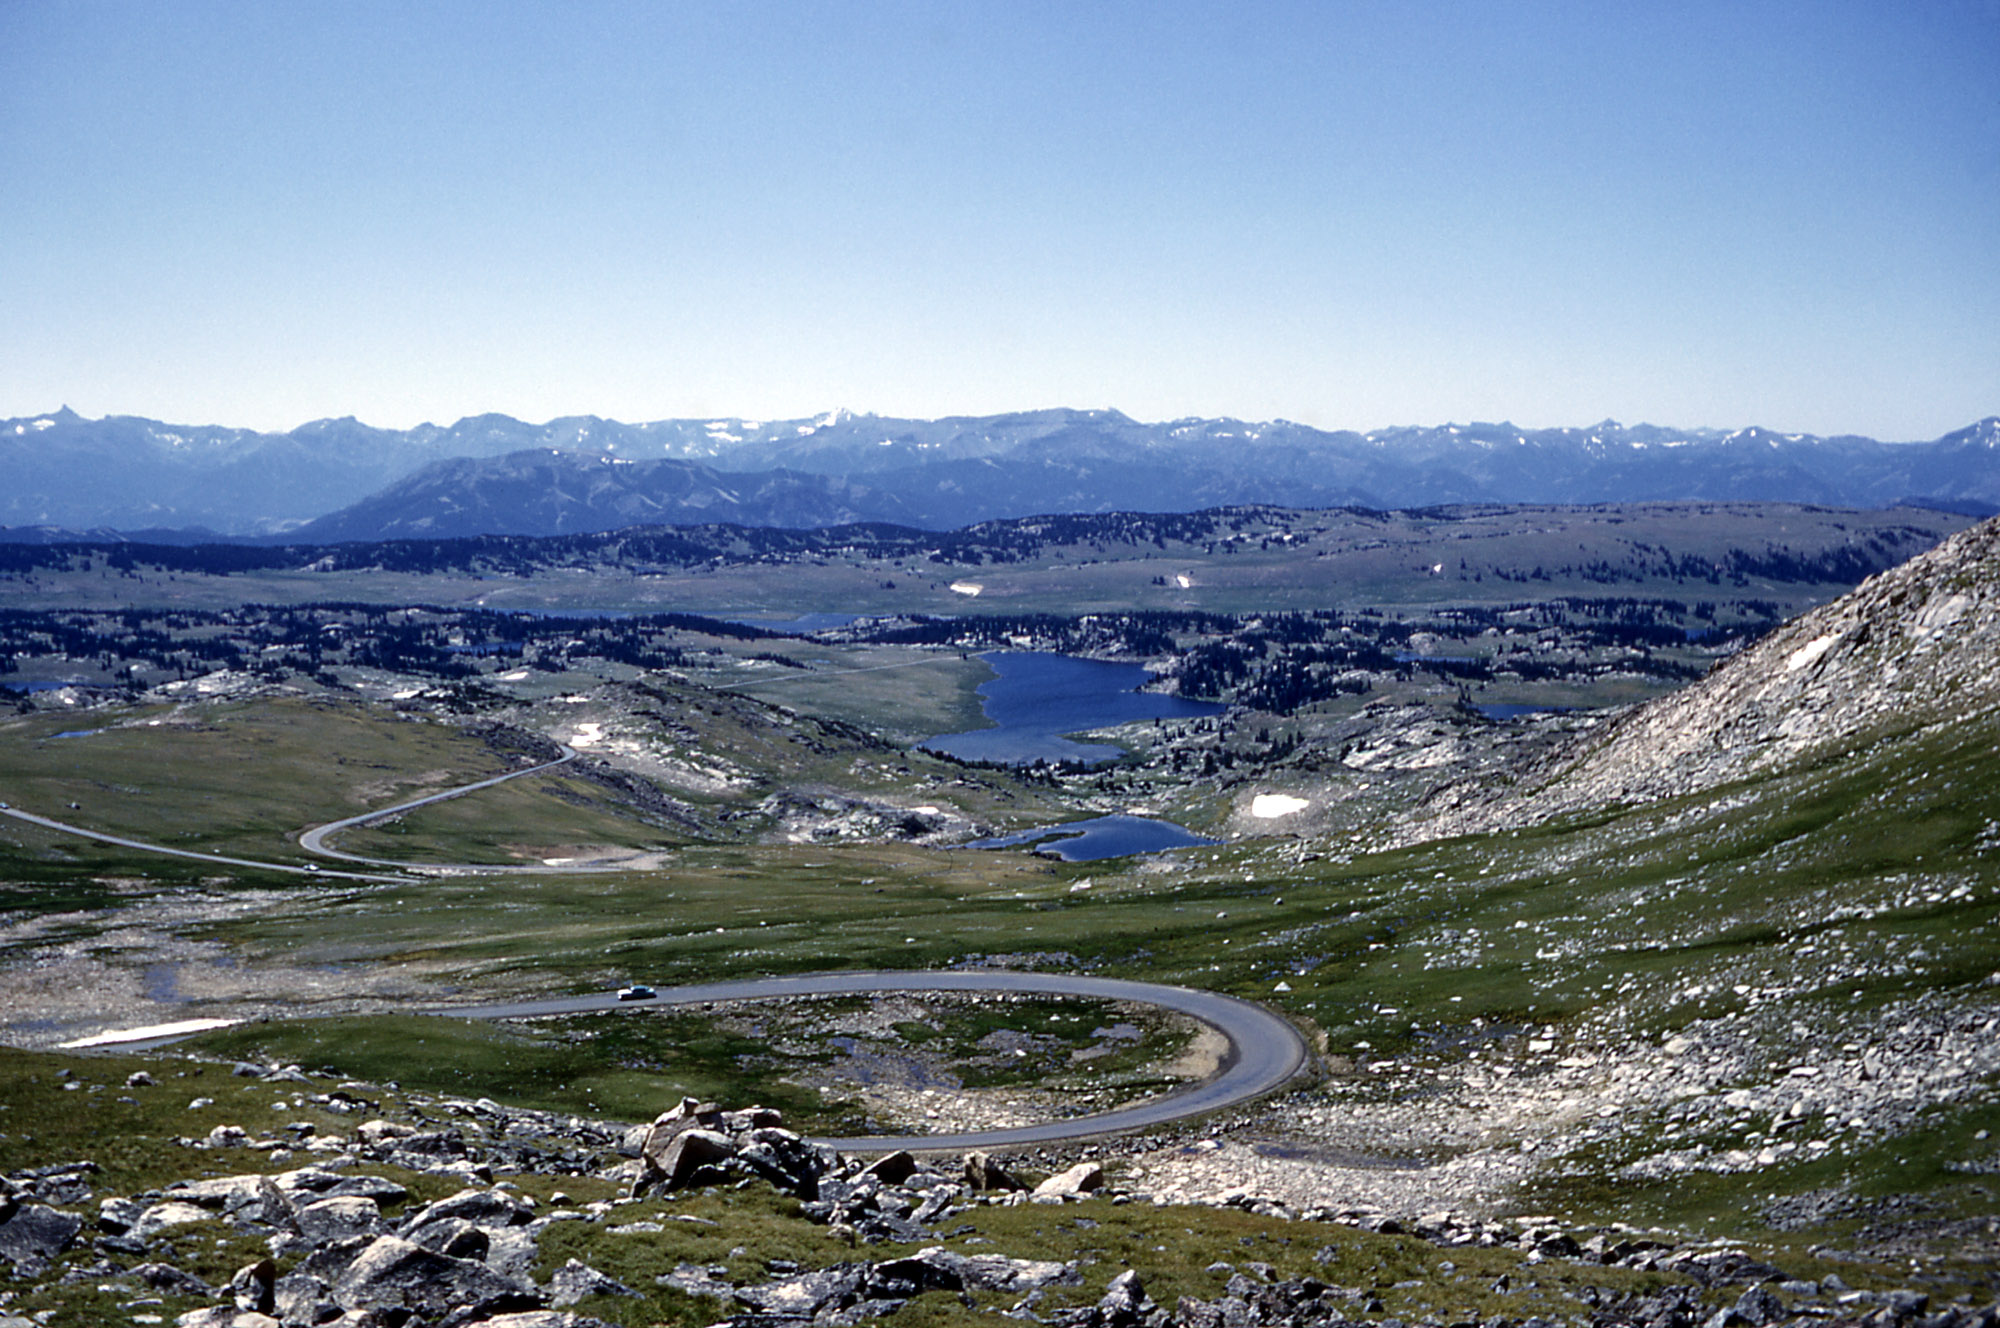 Beartooth highway winding roads